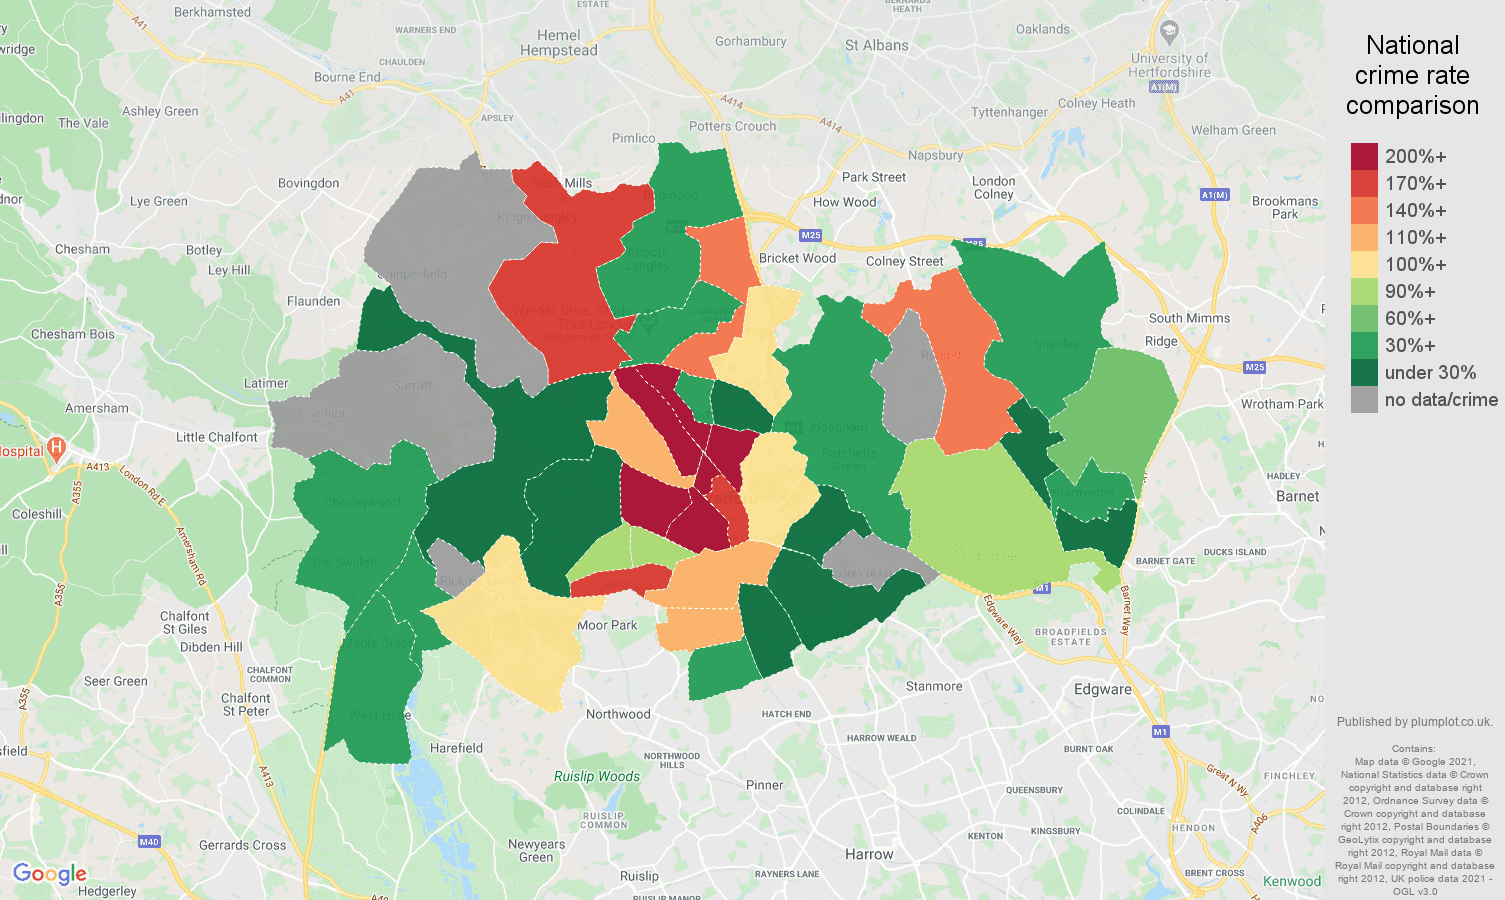 Watford bicycle theft crime rate comparison map